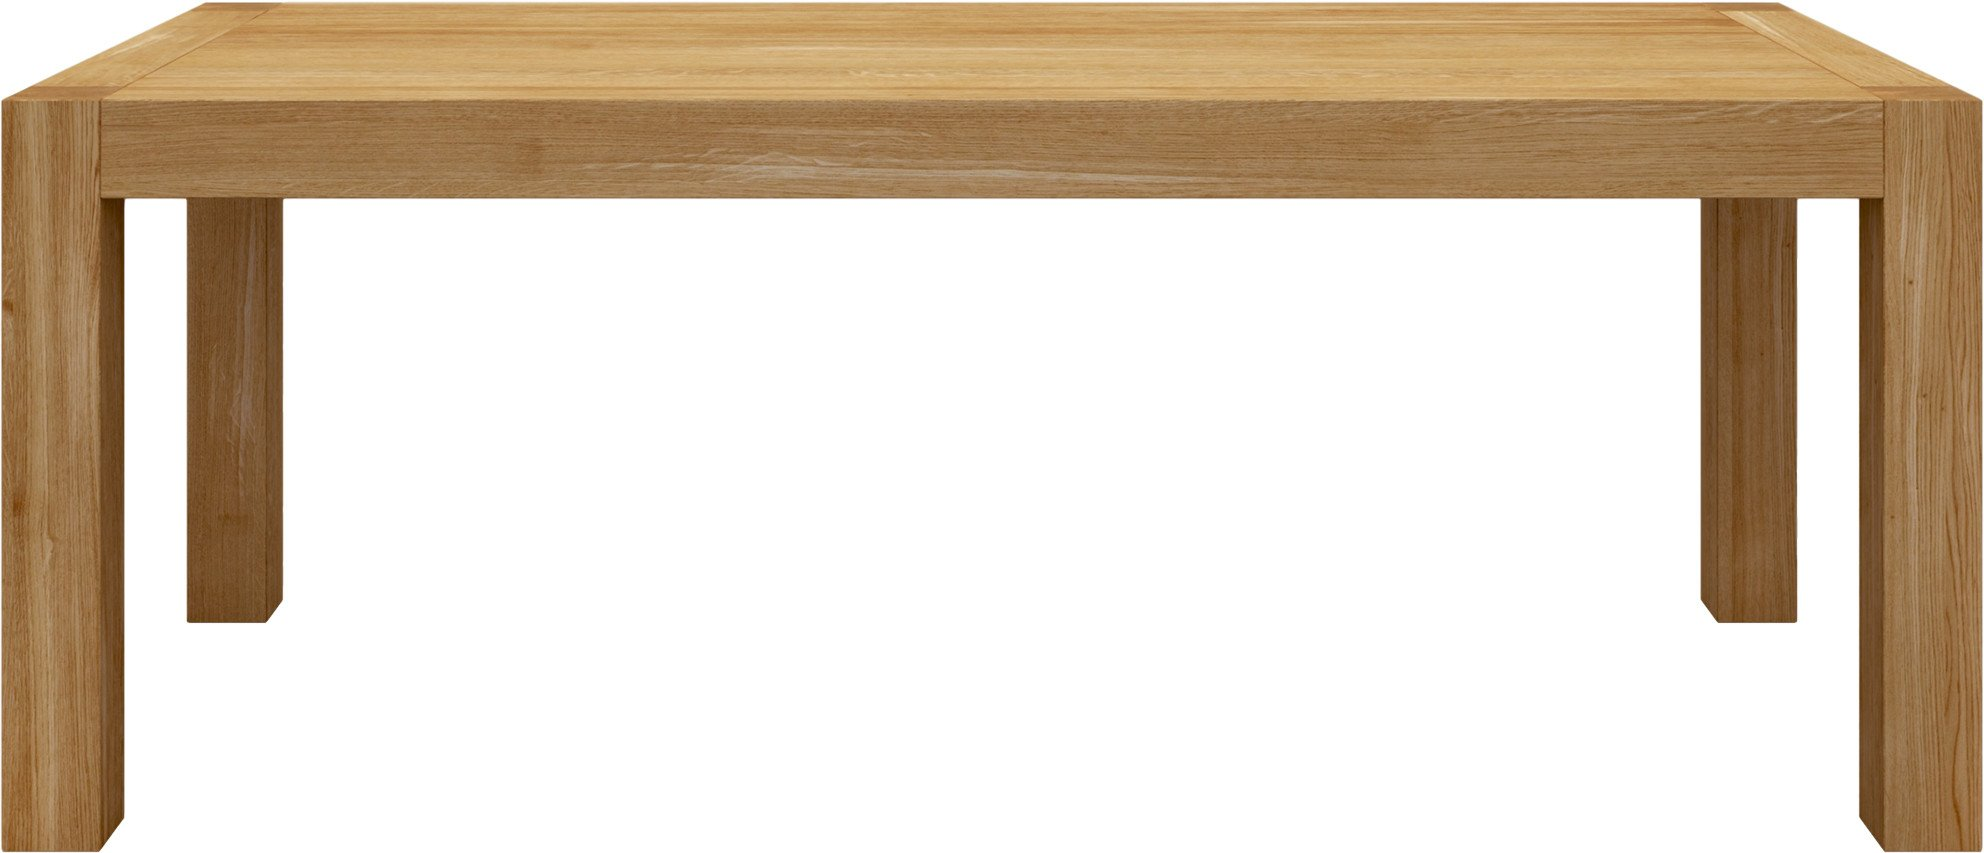 Blox Table Natural 200x90, Miloni